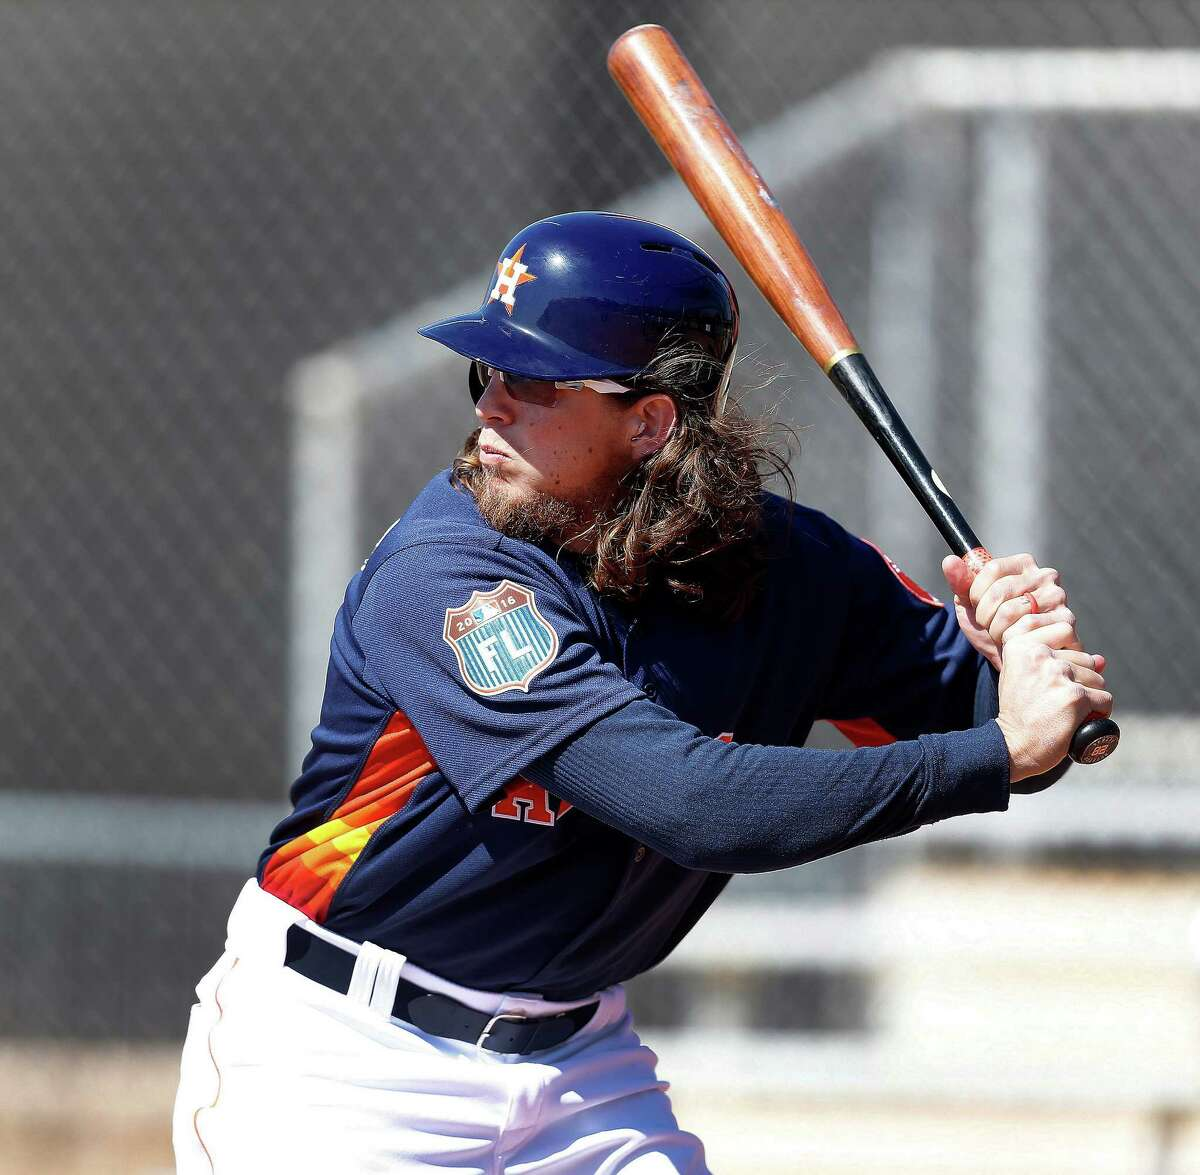 Houston Astros outfielder Colby Rasmus during batting practice at the Astros spring training in Kissimmee, Florida, Thursday, Feb. 25, 2016.